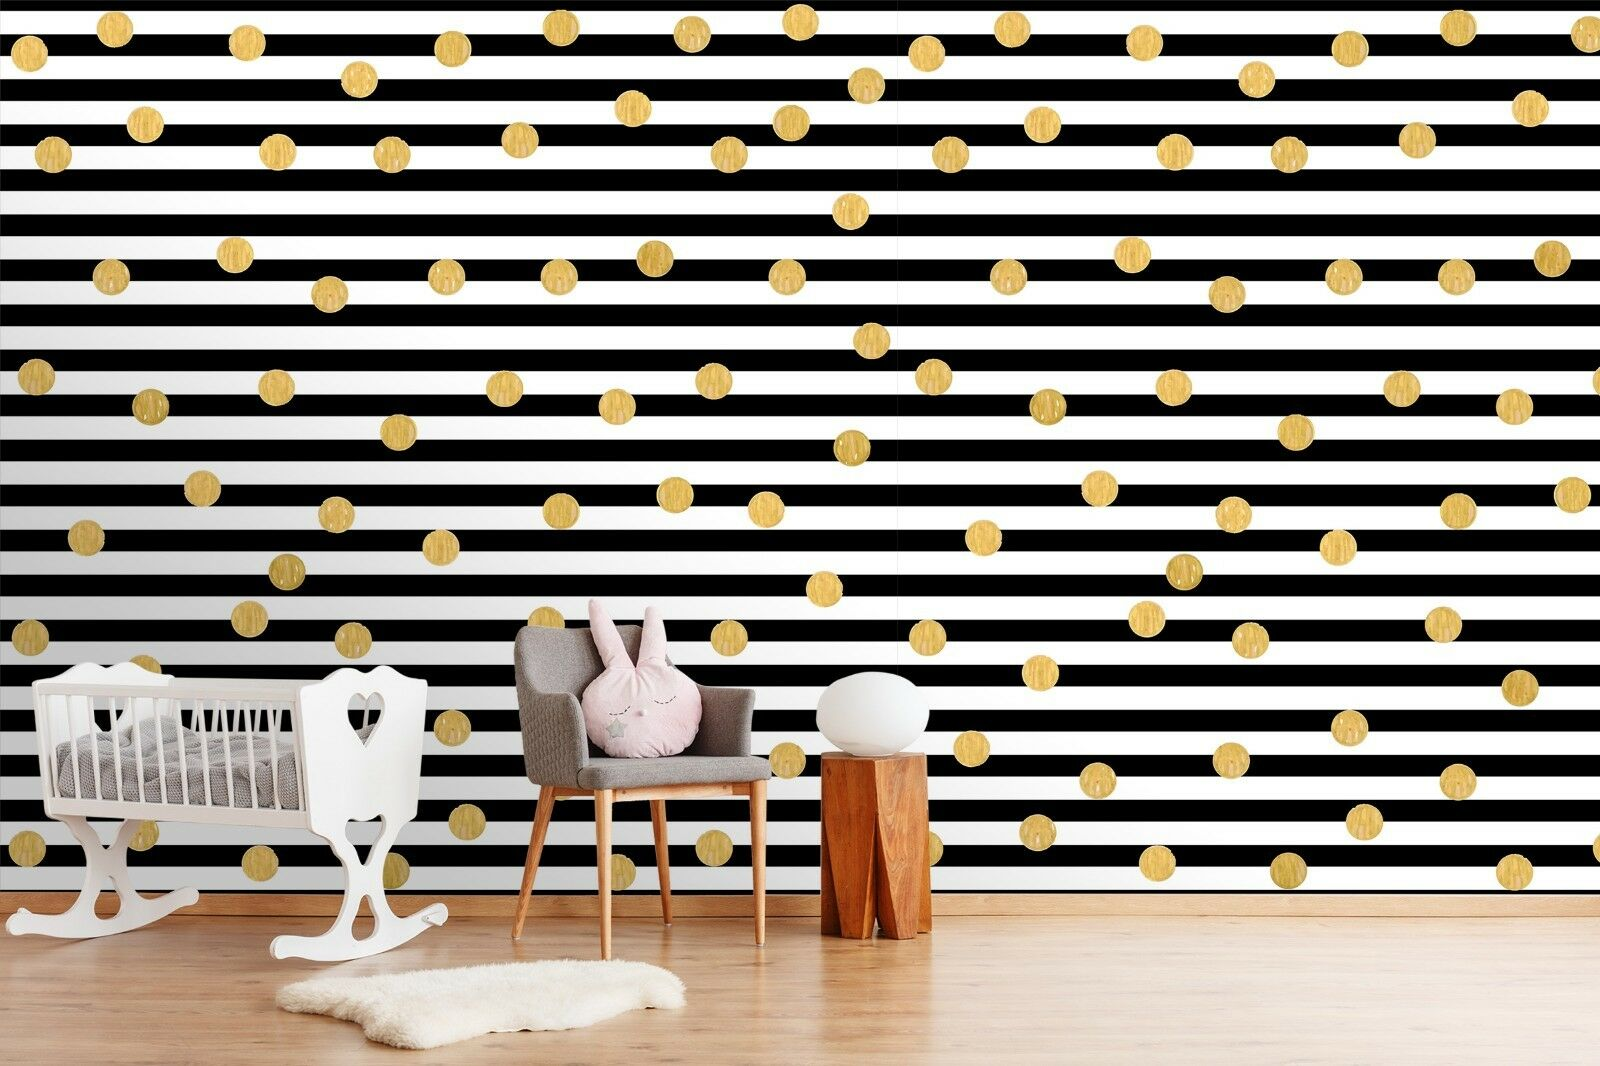 3D Horizontal Circle 09 Wall Paper Exclusive MXY Wallpaper Mural Decal Indoor